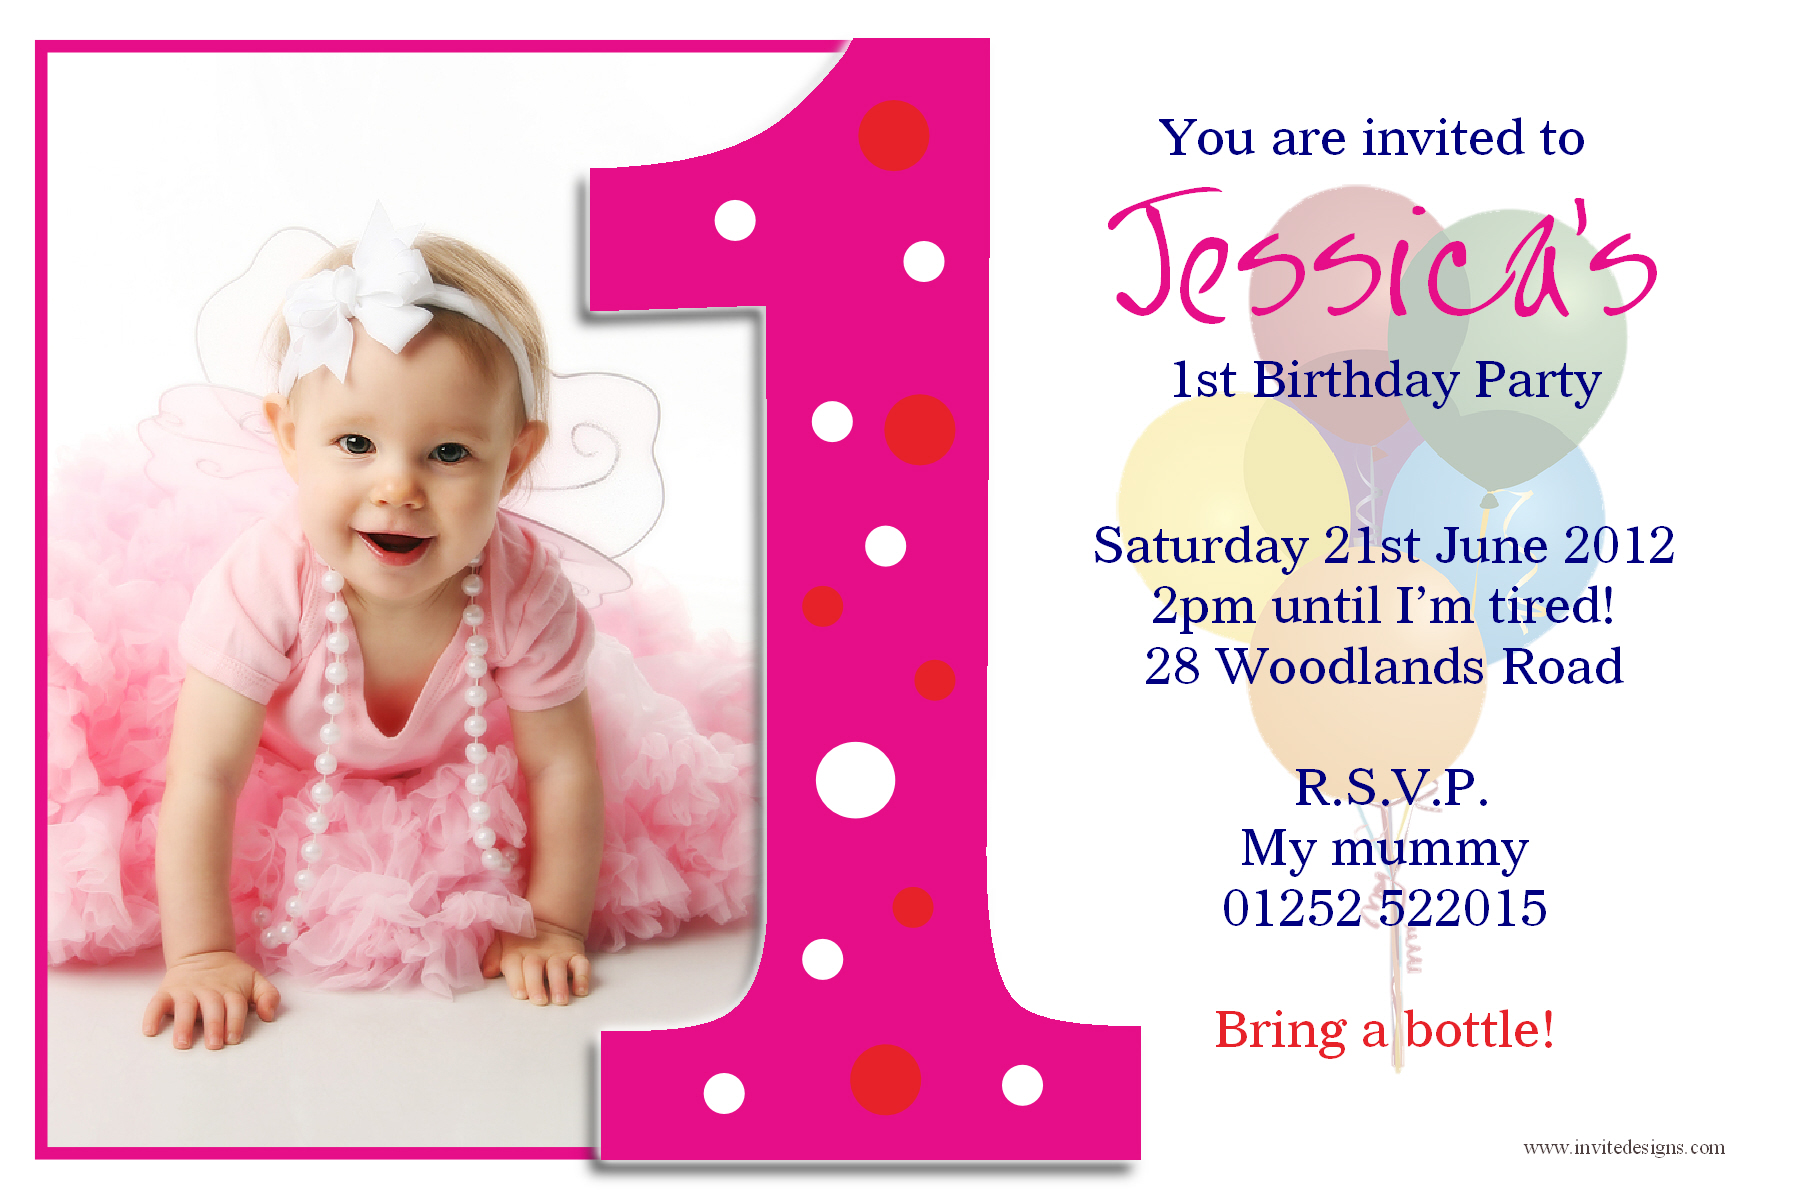 baby birthday invitation templates free download ; Comely-1St-Birthday-Invitations-Which-Can-Be-Used-As-Birthday-Invitations